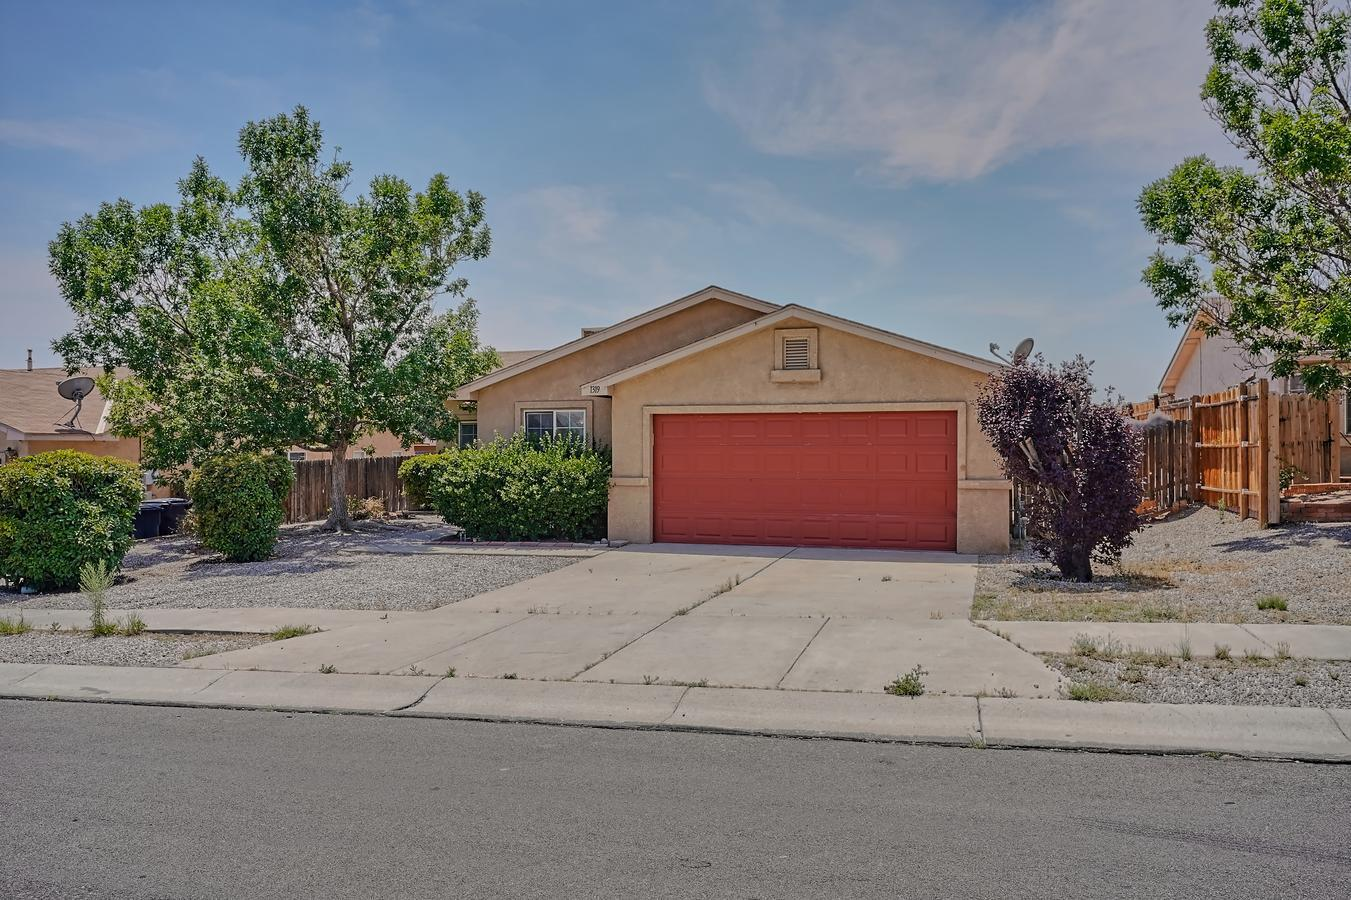 Three bedroom, two bath home just updated with new luxury vinyl flooring throughout, and new paint ready for a new owner. The home features a kitchen with adjacent dining area, large family room with high ceilings and a two car garage.  Quick access to Interstate 40 via Unser Boulevard.